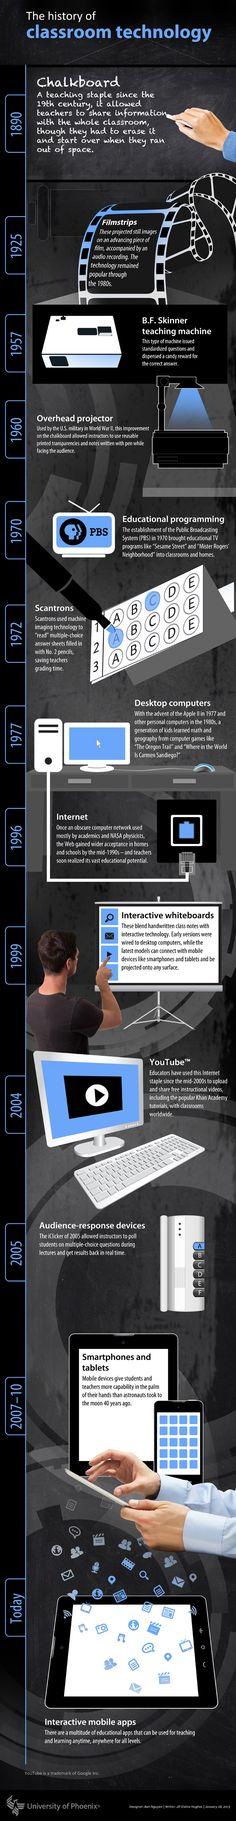 Classroom Technology Evolution Infographic - e-Learning Infographicse-Learning Infographics